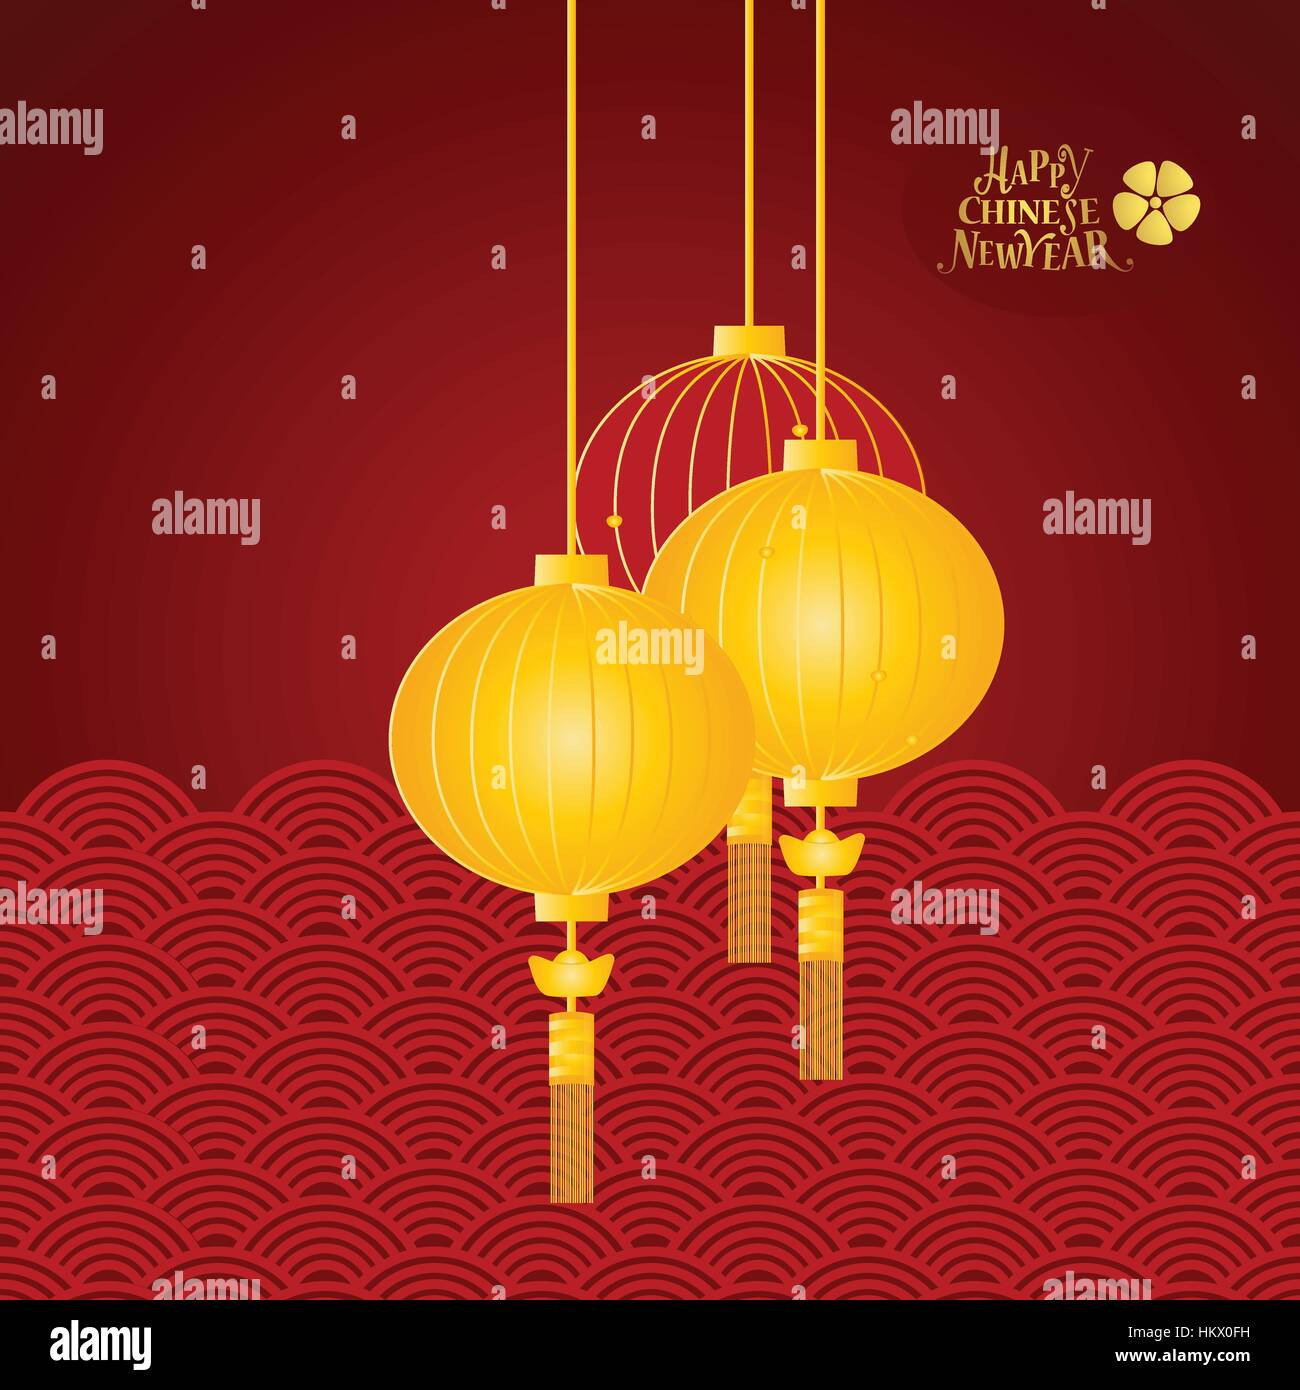 chinese new year background design vector illustration